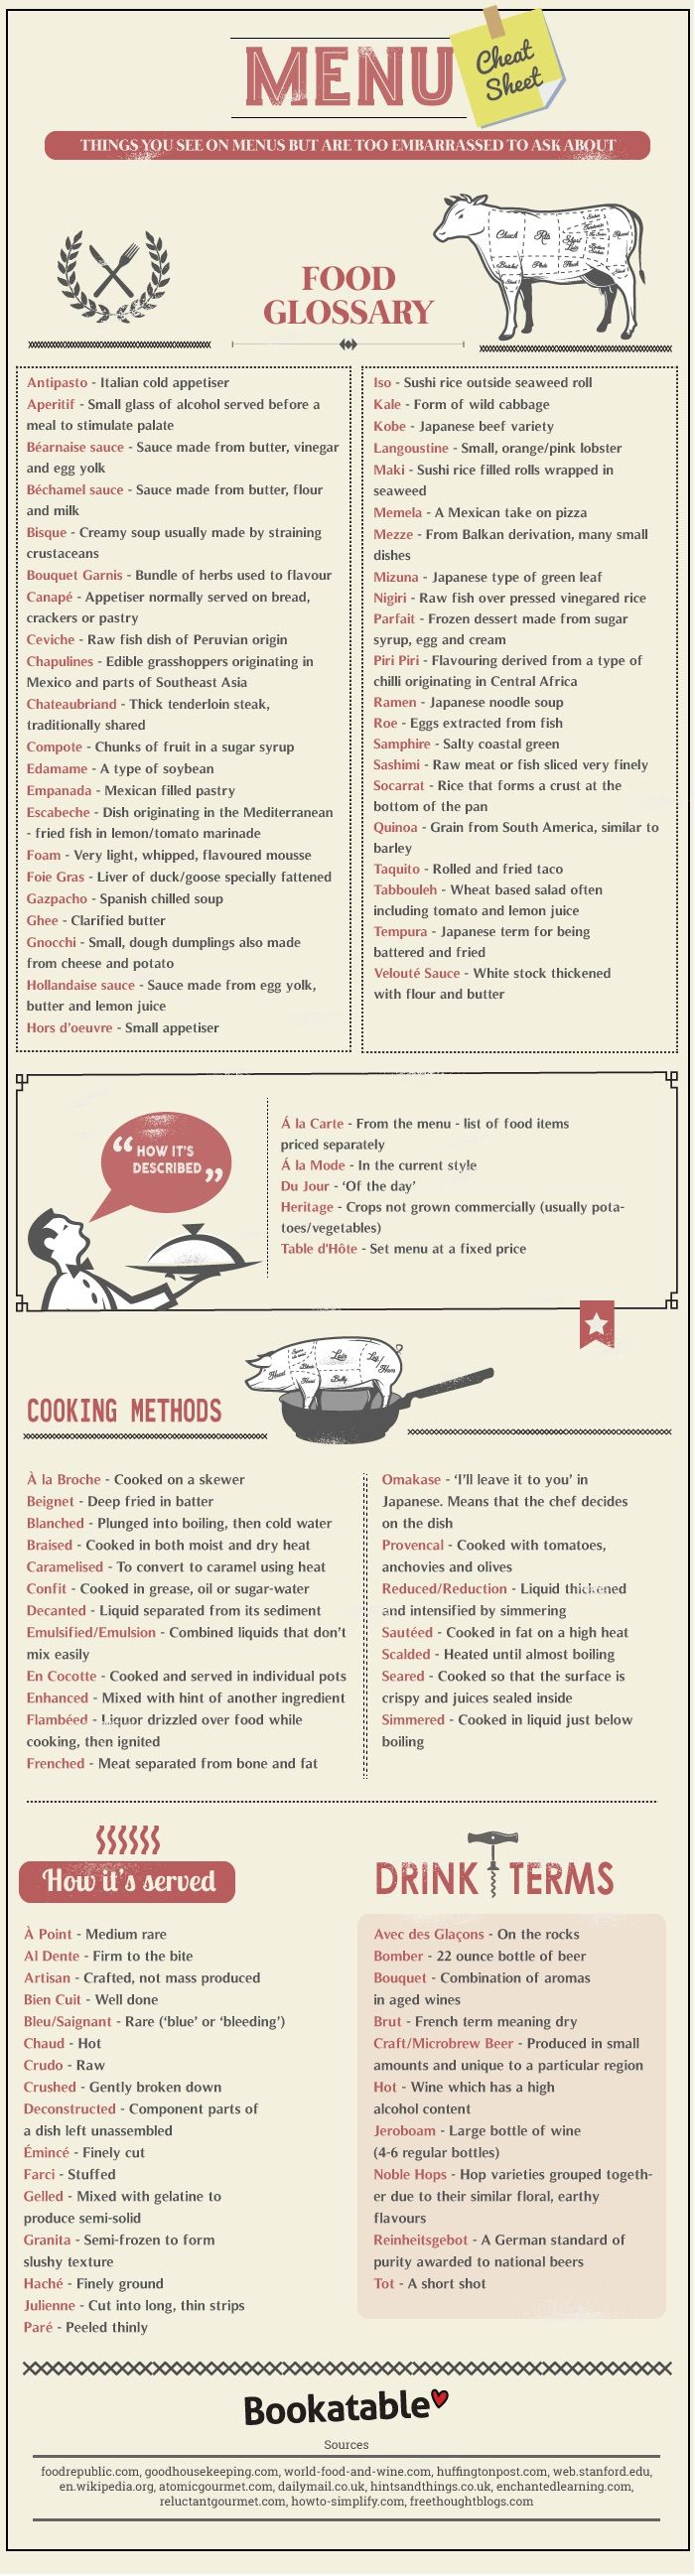 worksheet Basic Cooking Terms Worksheet 638 best cooking class ideas info images on pinterest food infographic the meanings of fancy terms in restaurant menus designtaxi com